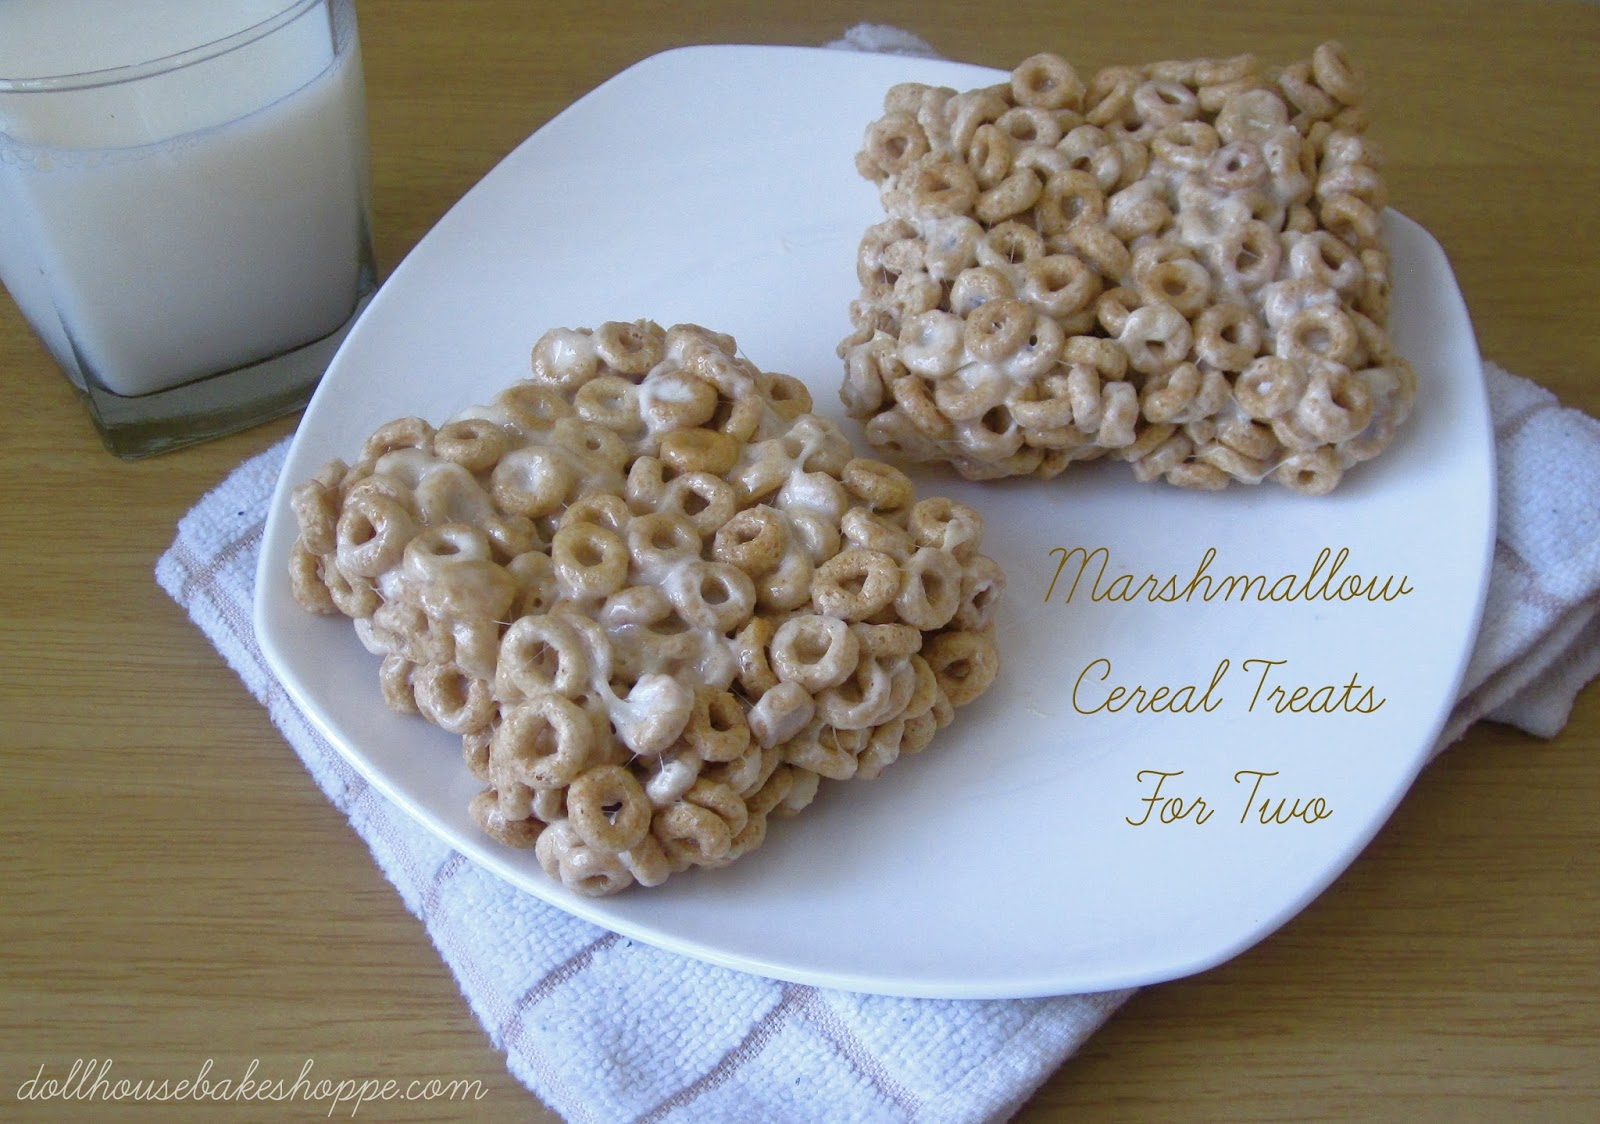 Lindsay Ann Bakes: Marshmallow Cereal Treats For Two